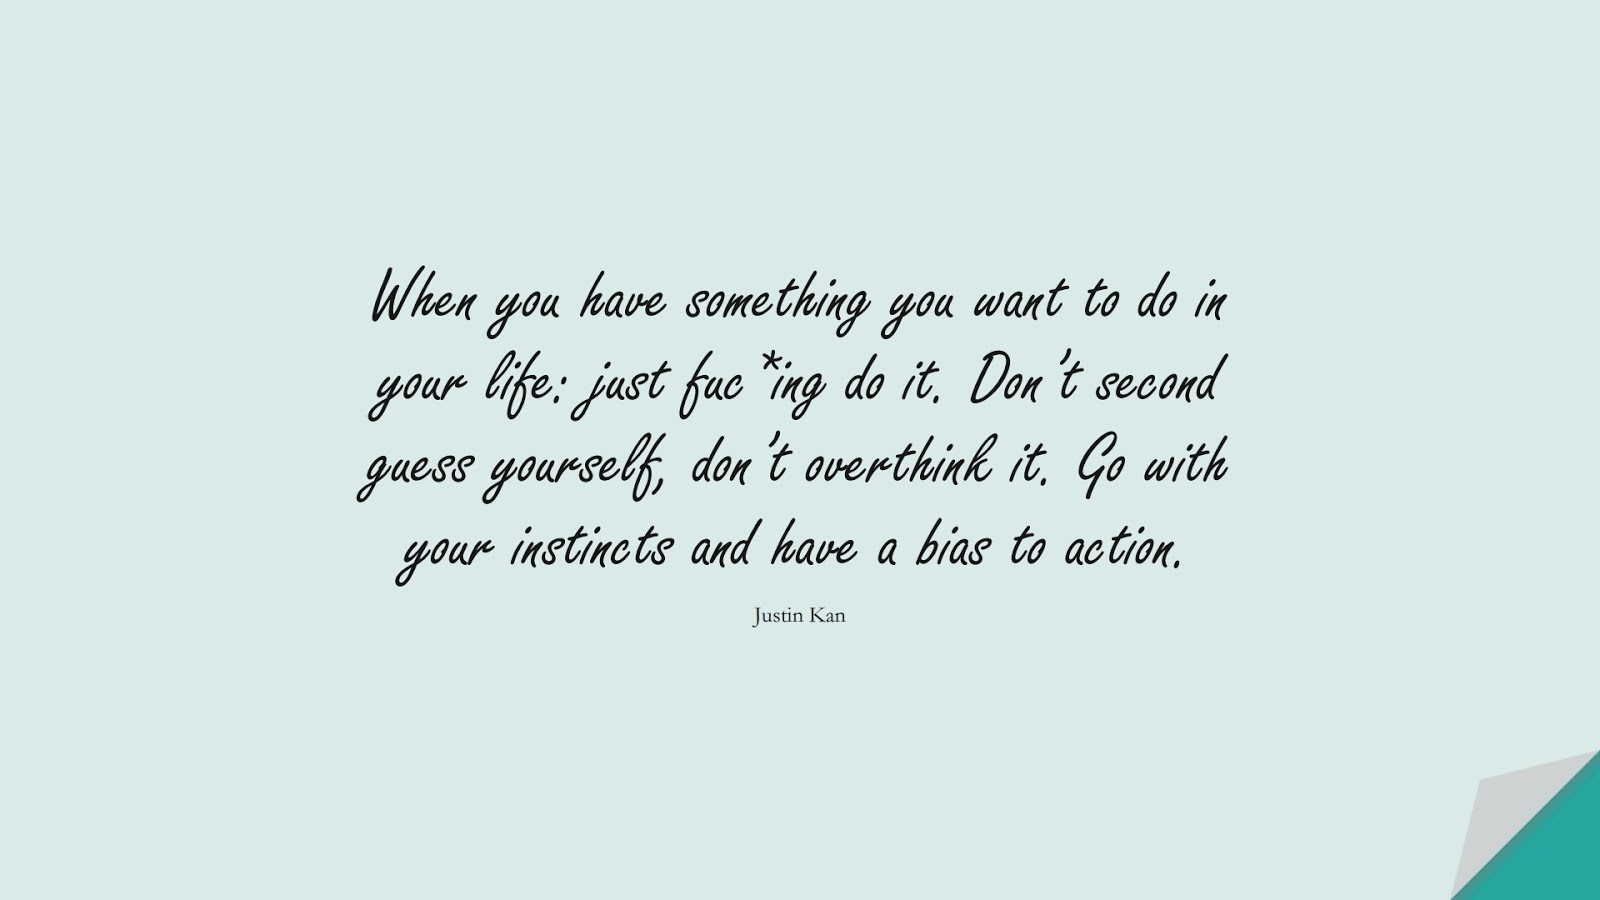 When you have something you want to do in your life: just fuc*ing do it. Don't second guess yourself, don't overthink it. Go with your instincts and have a bias to action. (Justin Kan);  #EncouragingQuotes